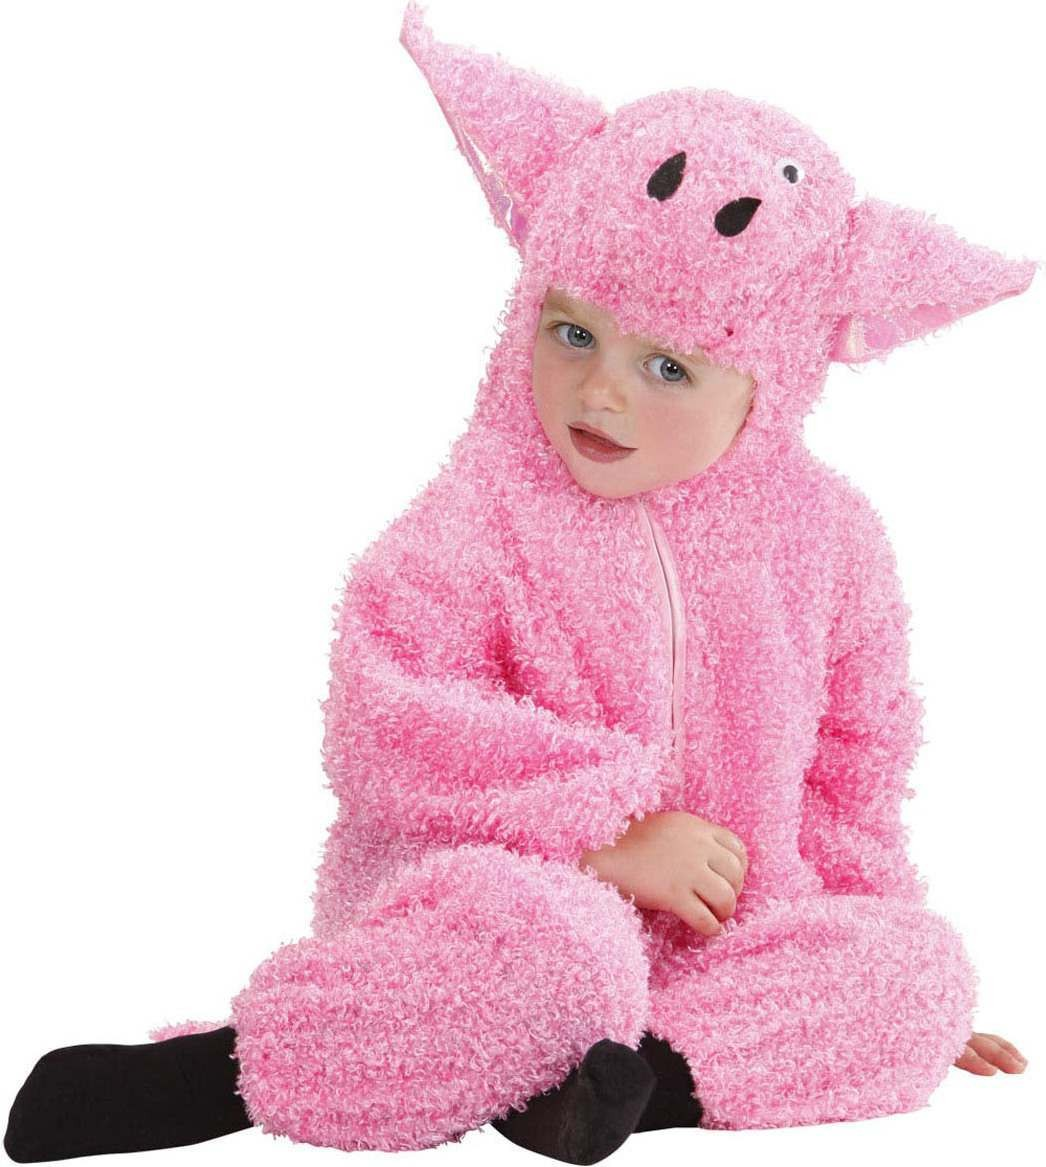 Toddler Fuzzy Pig Baby Animal Outfit - (Pink)